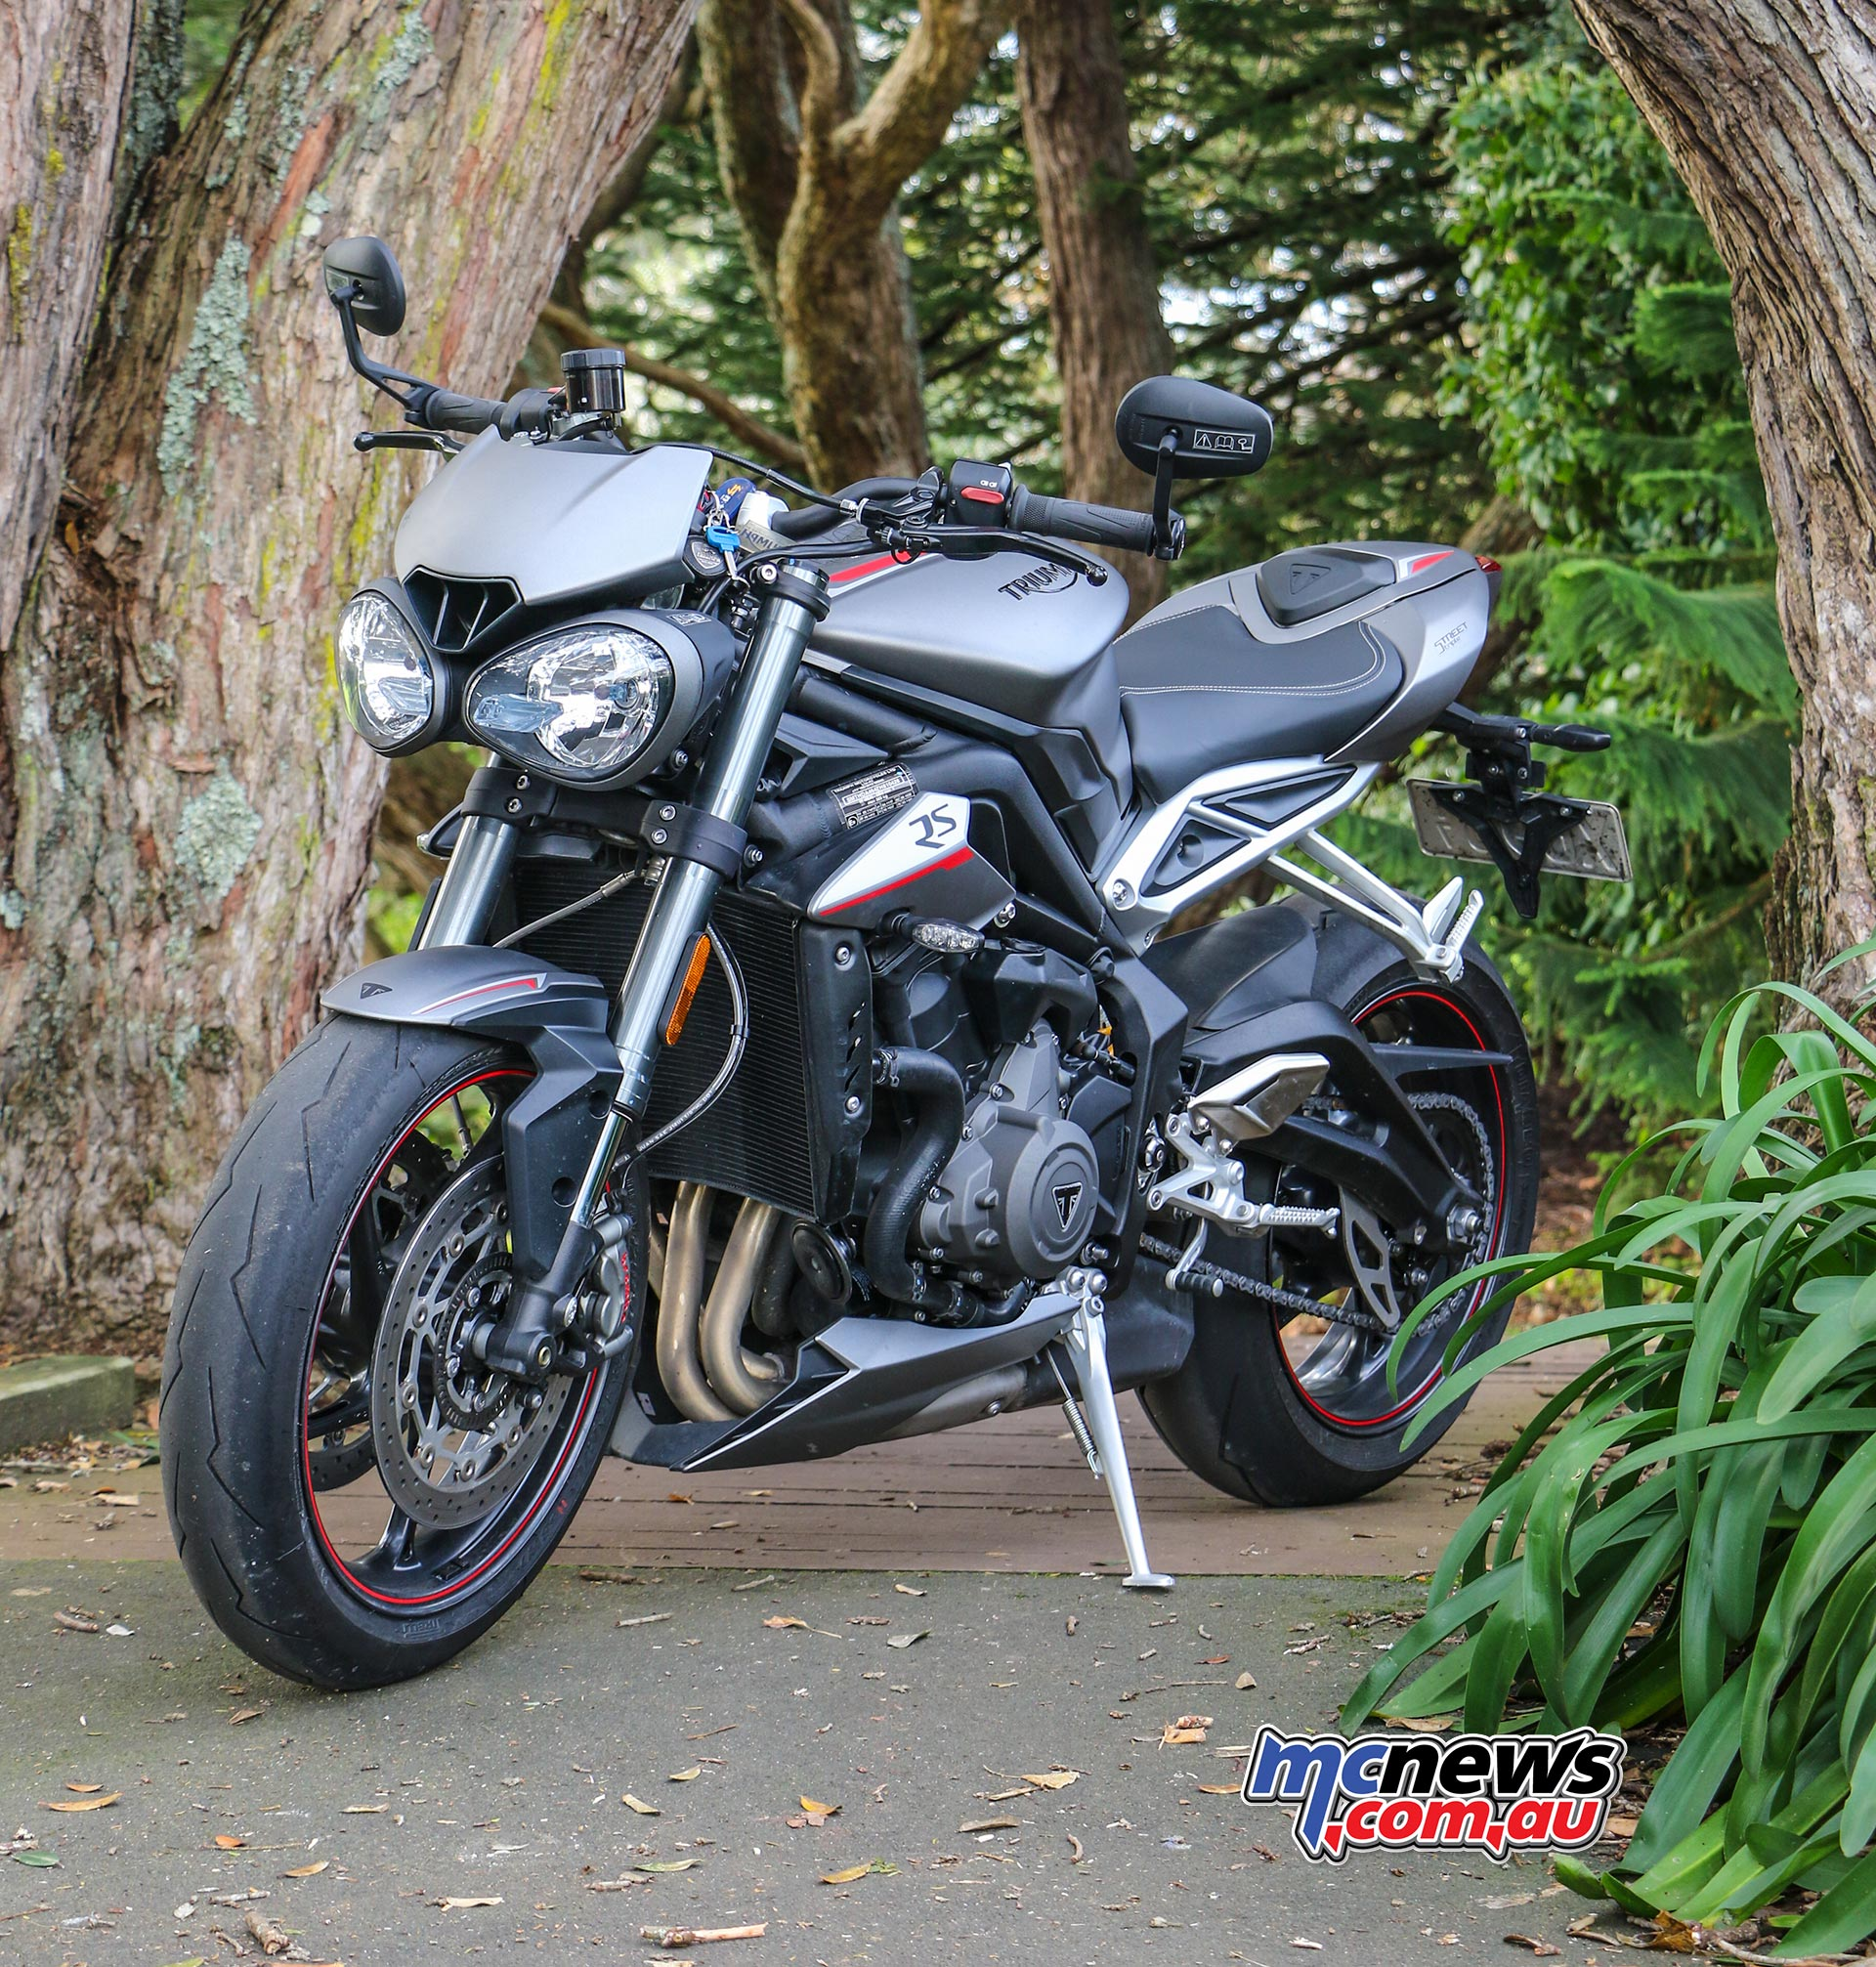 Admirable Triumph Street Triple 765 Rs Review 121Hp Ohlins Ibusinesslaw Wood Chair Design Ideas Ibusinesslaworg